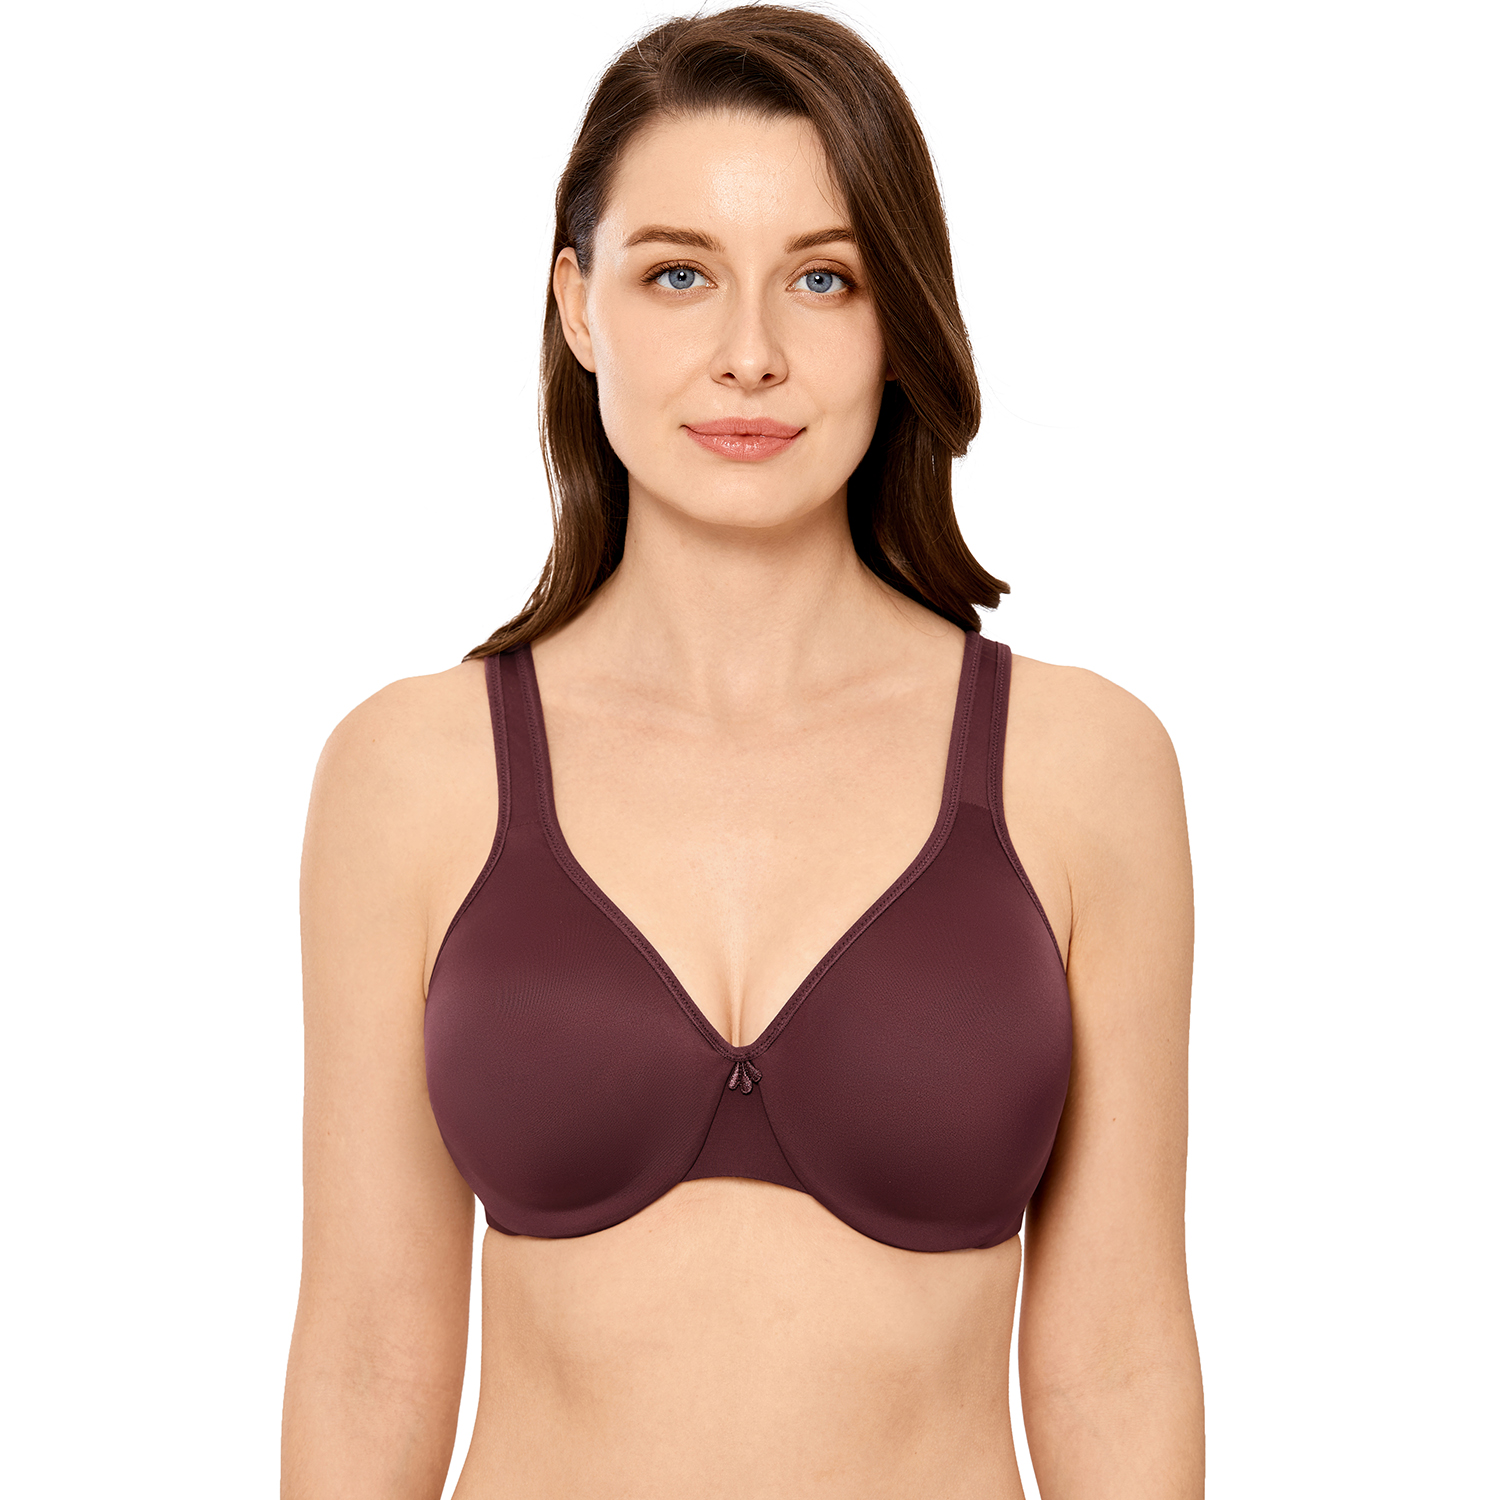 Women's Smooth Minimizer Bra Full Figure Large Busts Underwire Seamless Bras